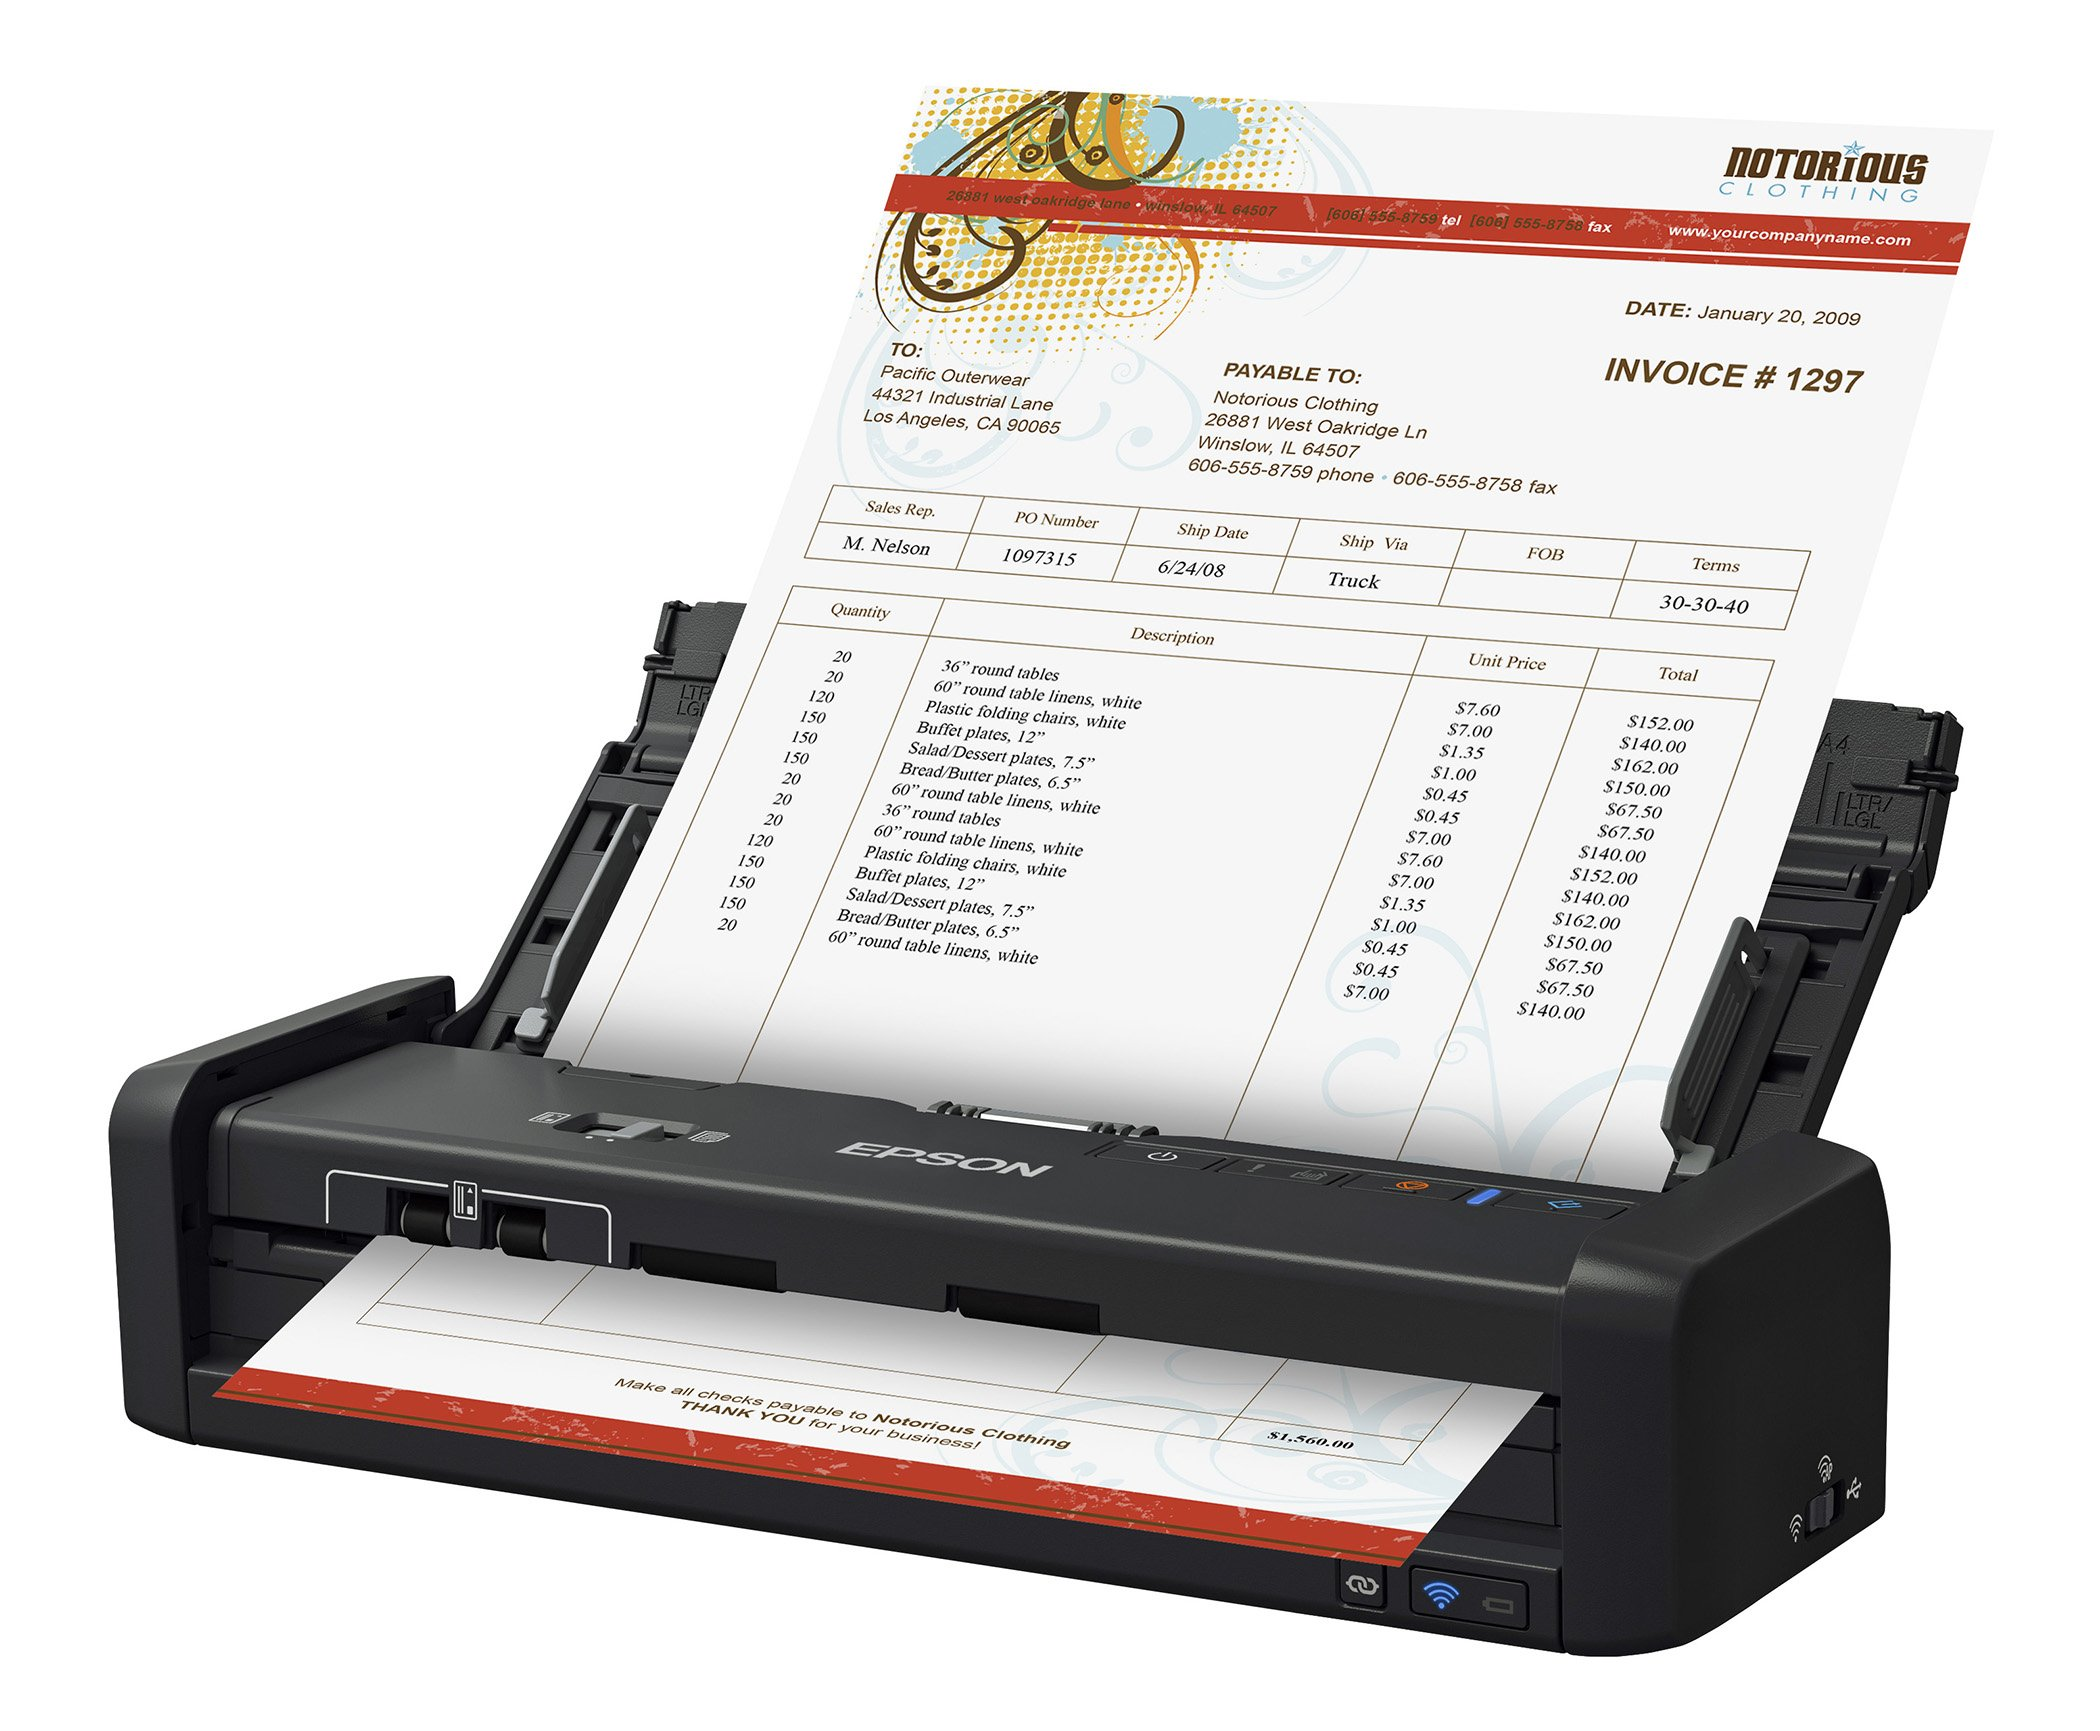 ES-300WR Wireless Color Portable Duplex Document Scanner Accounting Edition for PC and Mac, Auto Document Feeder (ADF) by Epson